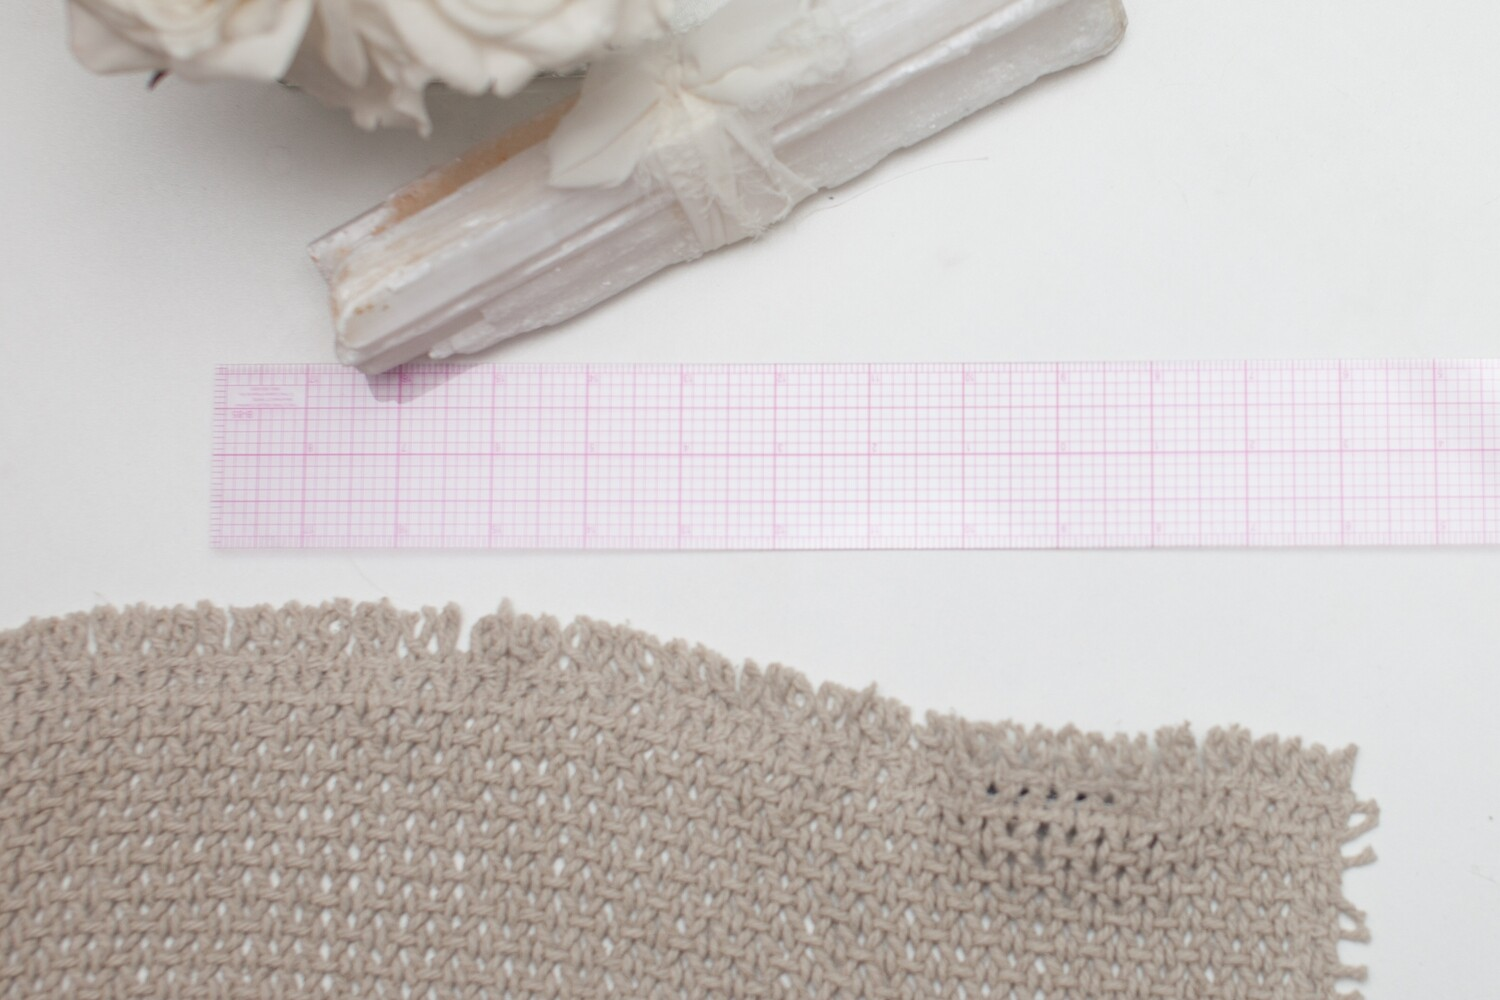 CLEAR GRAPH RULER 18"